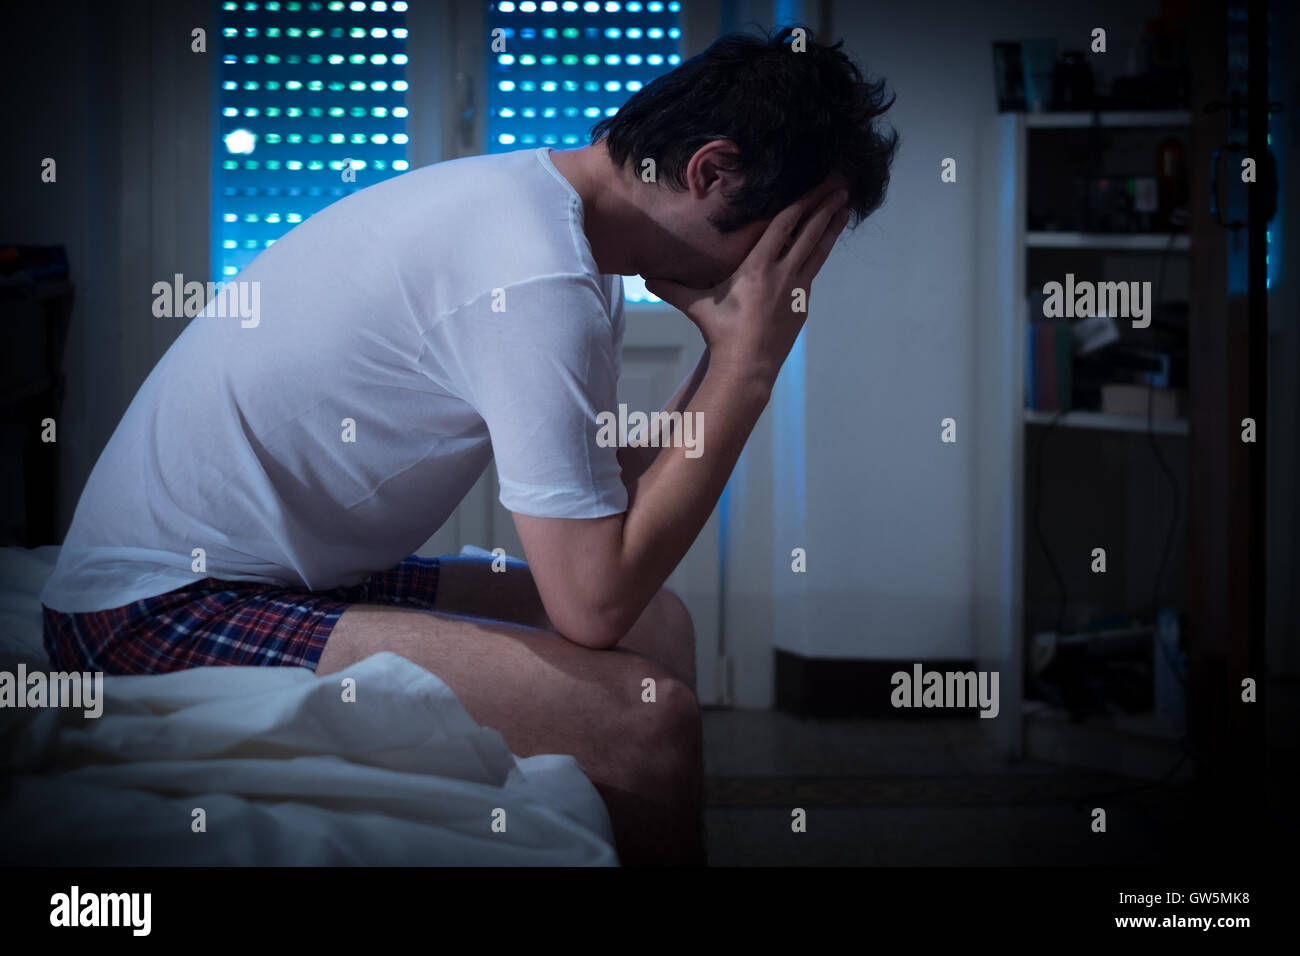 Sad and lonely man seated on his bed - Stock Image